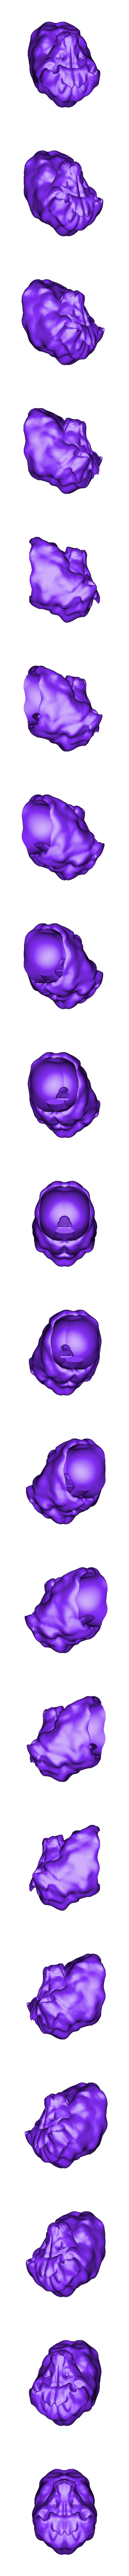 Lion_ball_lamp_head.stl Download free OBJ file Lion On Ball Nighlight/Lamp • 3D printable template, Pza4Rza